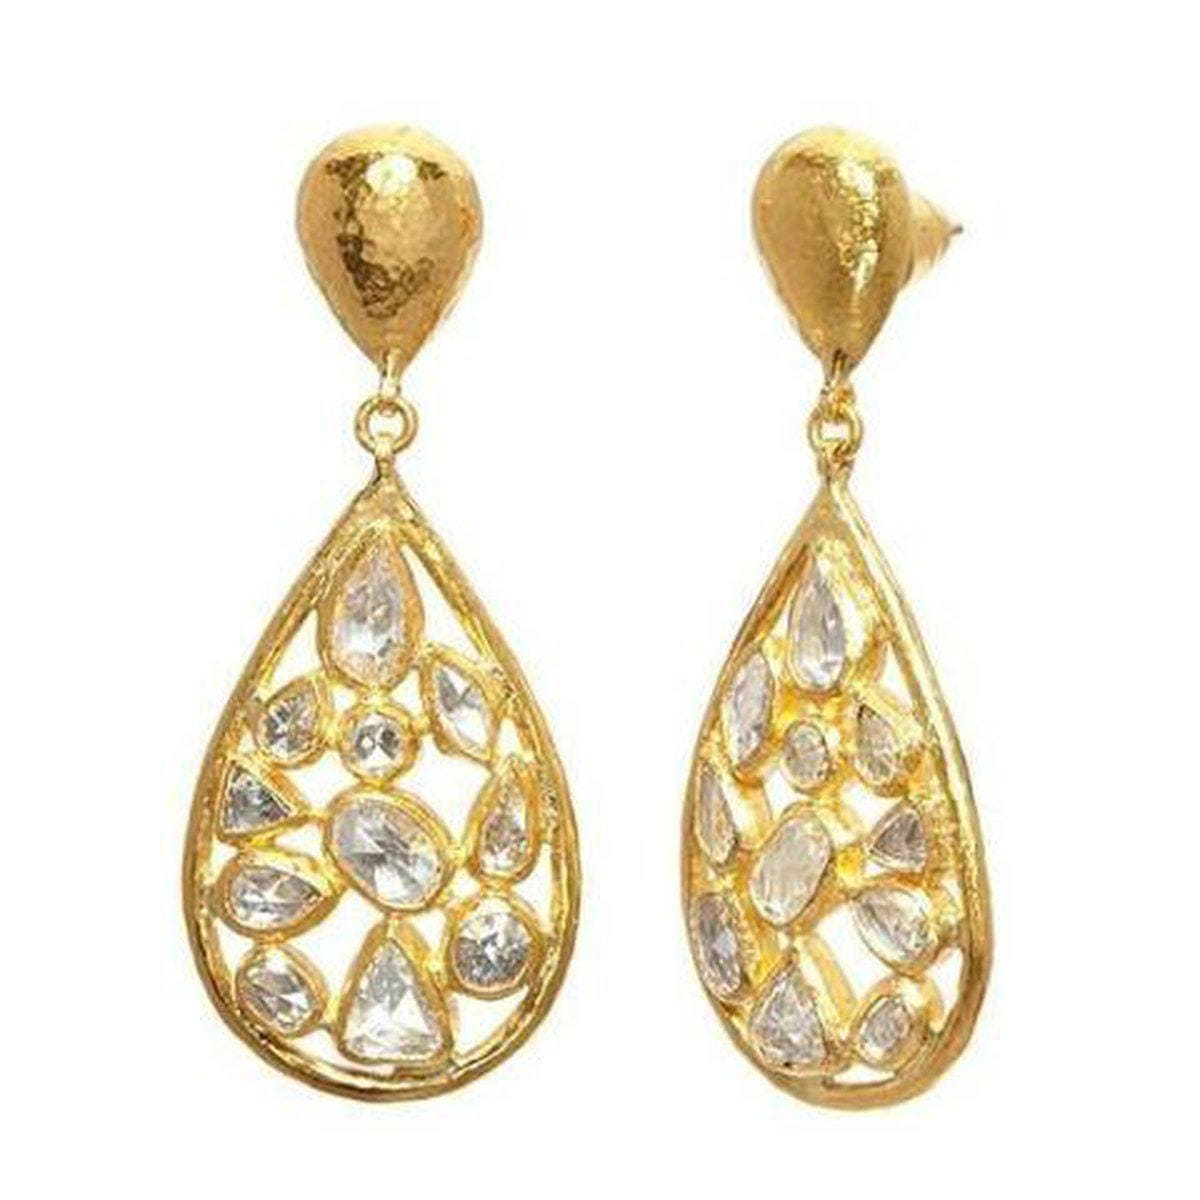 Pointelle 24K Gold White Diamond Earrings - E-U23741-DI